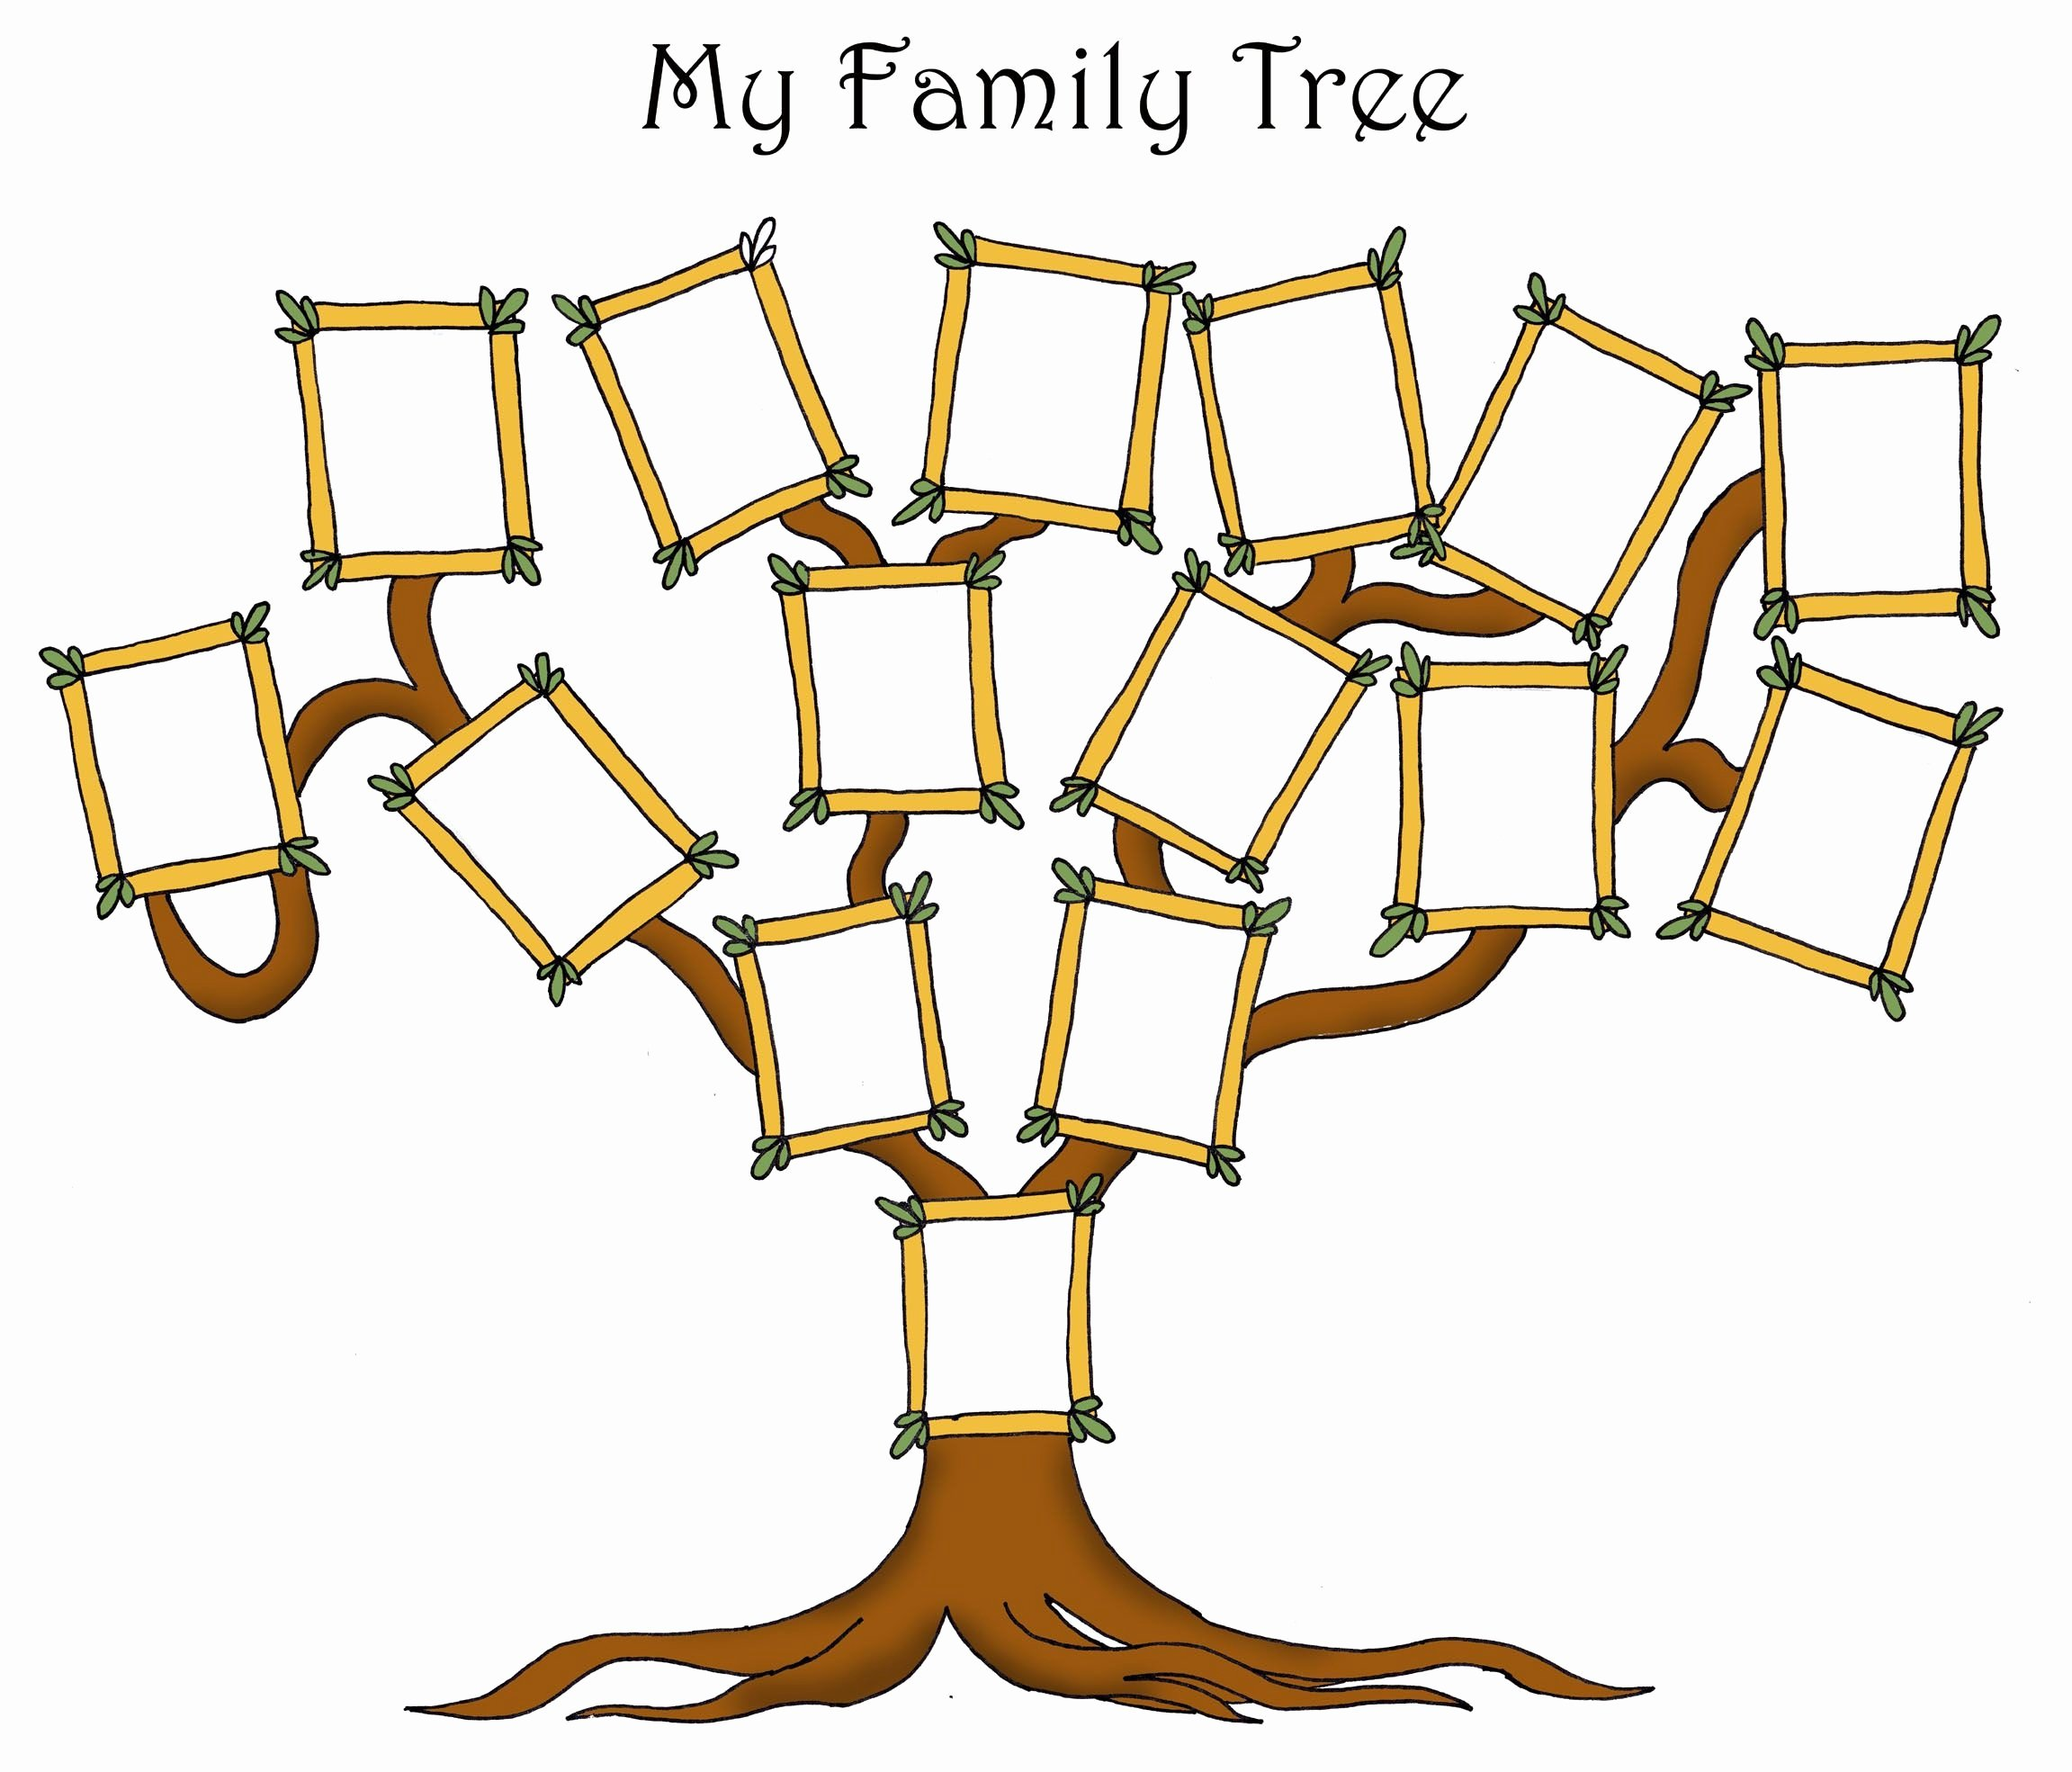 Family Tree Template with Photos Inspirational Free Editable Family Tree Template Daily Roabox